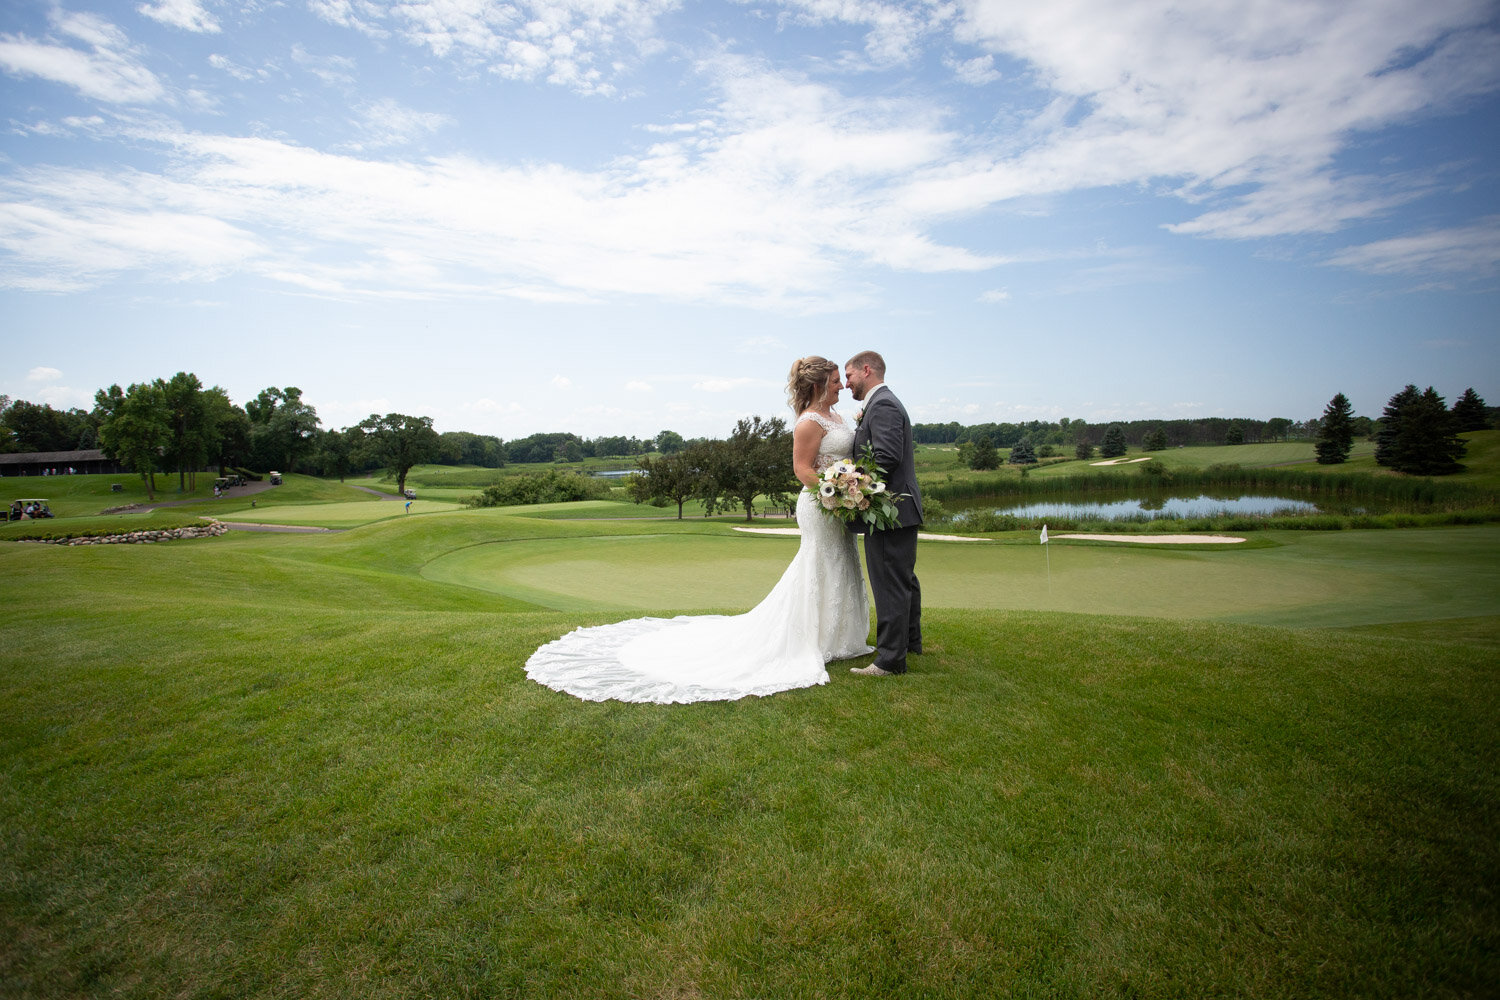 14-rush-creek-golf-course-bride-groom-portrait-outside-path-mahonenphotography-mn-wedding-photographer.jpg